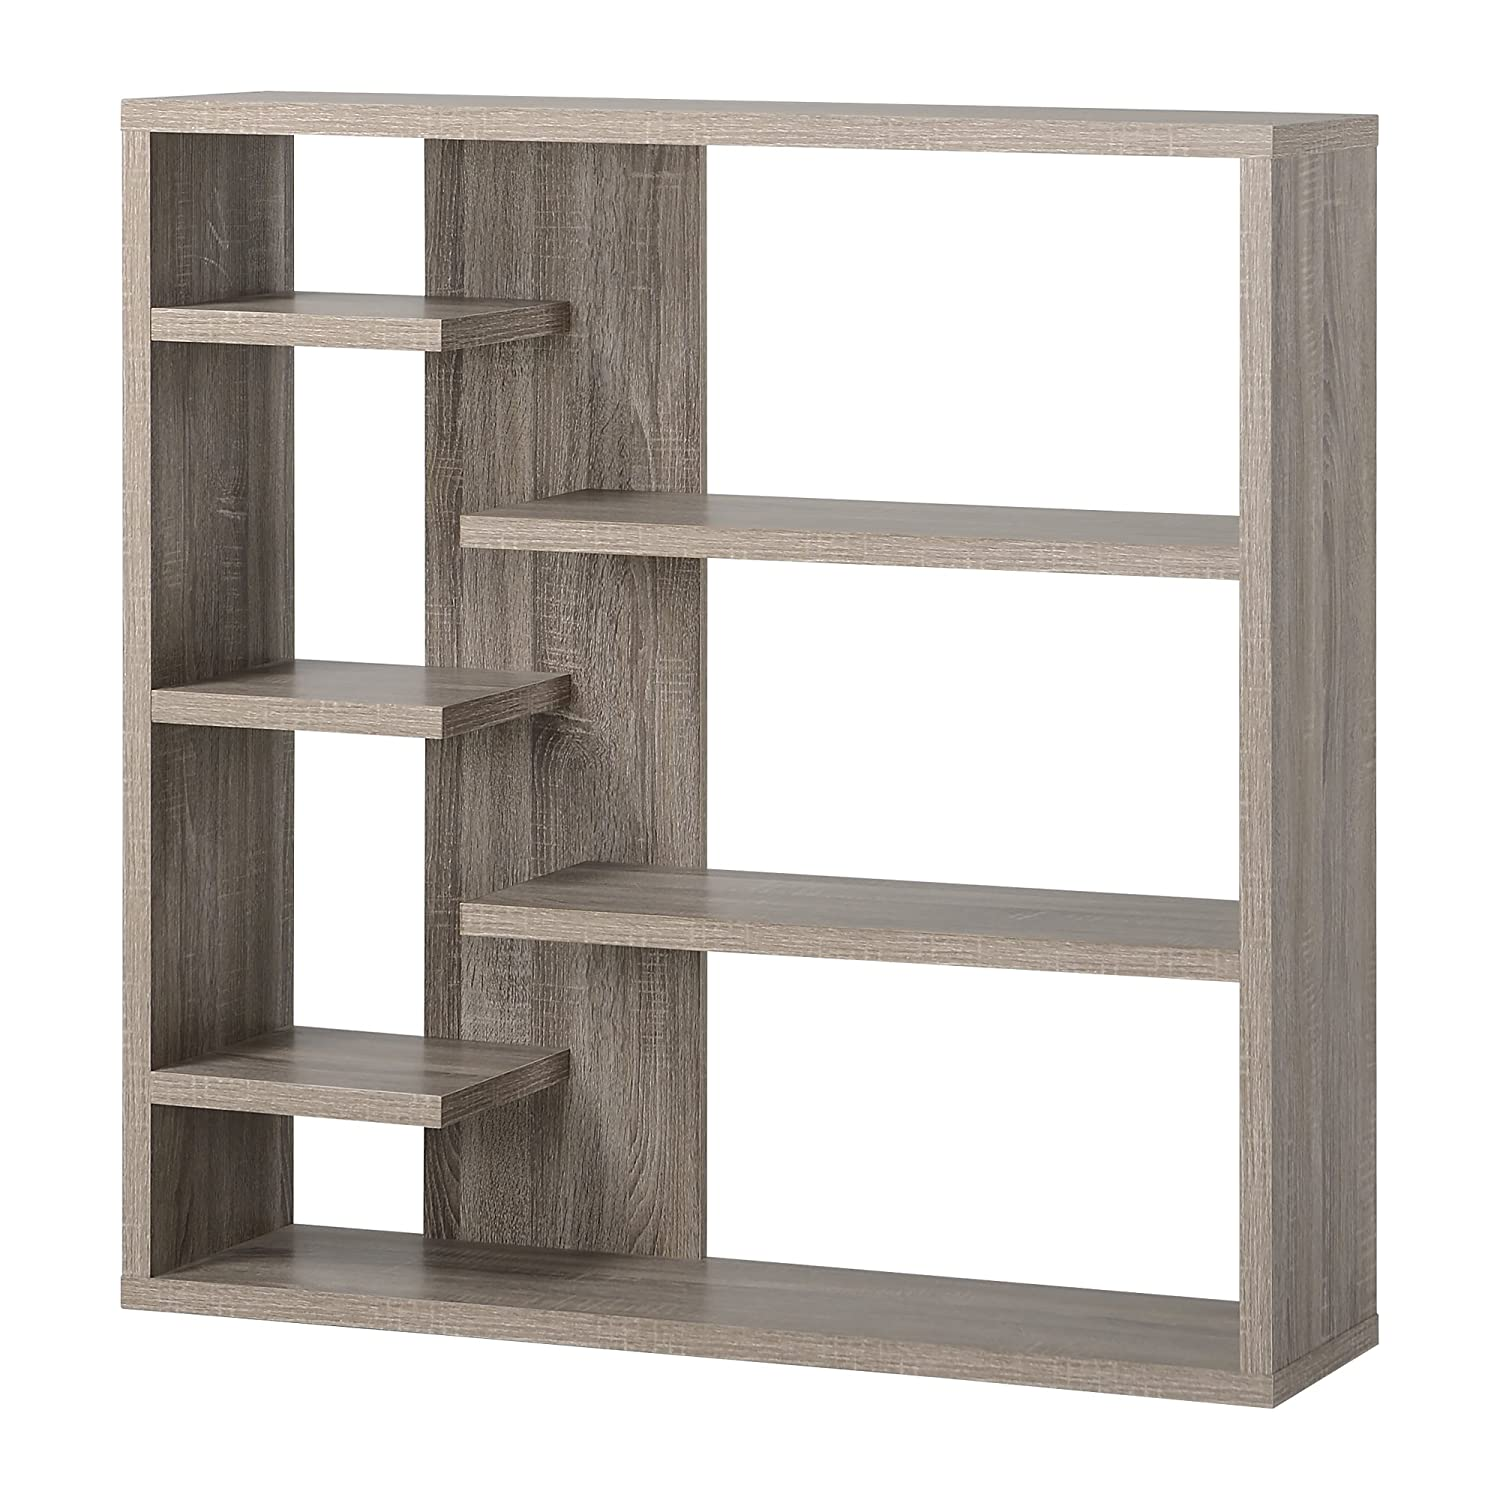 reclaimed wood bookshelf reclaimed wood shelves reclaimed wood